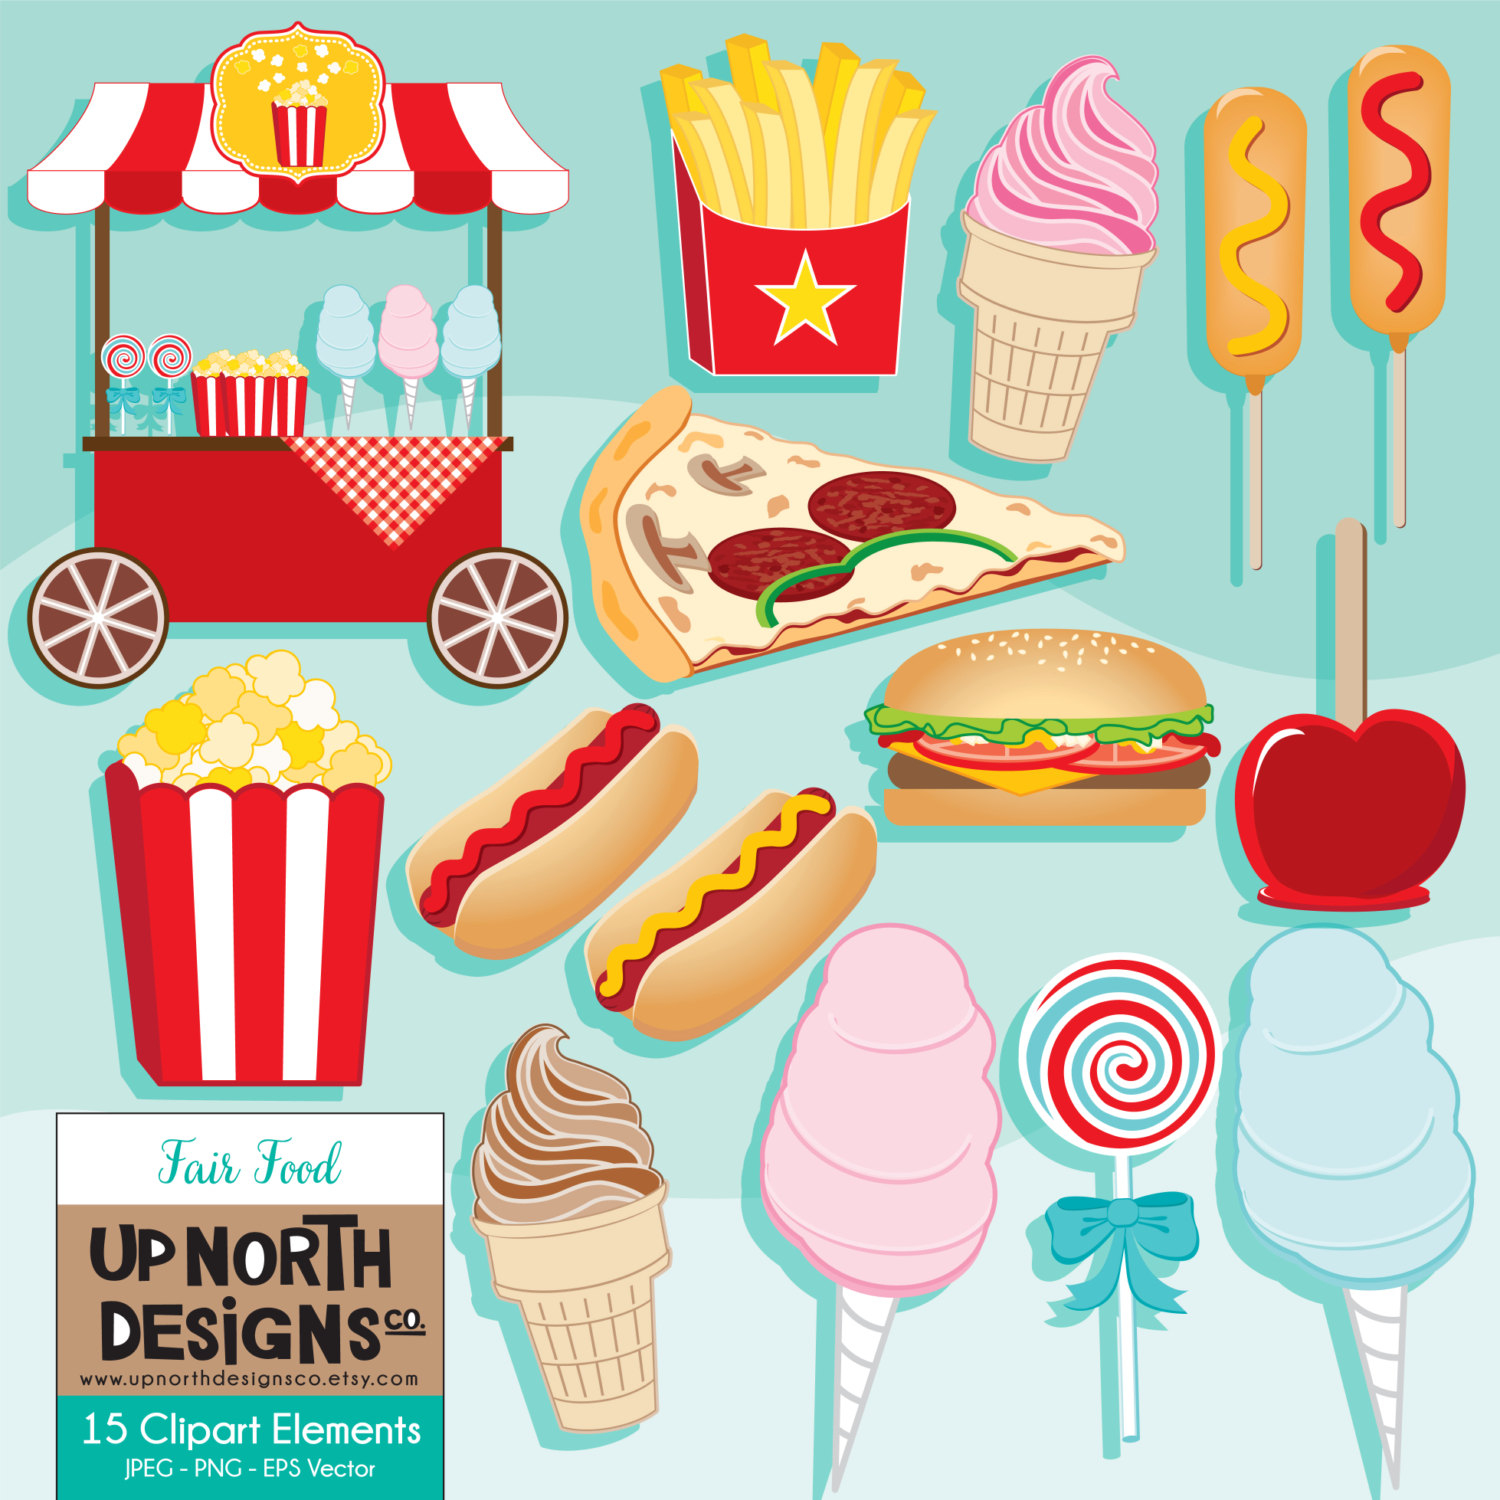 Popcorn clipart fair food Clipart Fair illustration popcorn Clipart